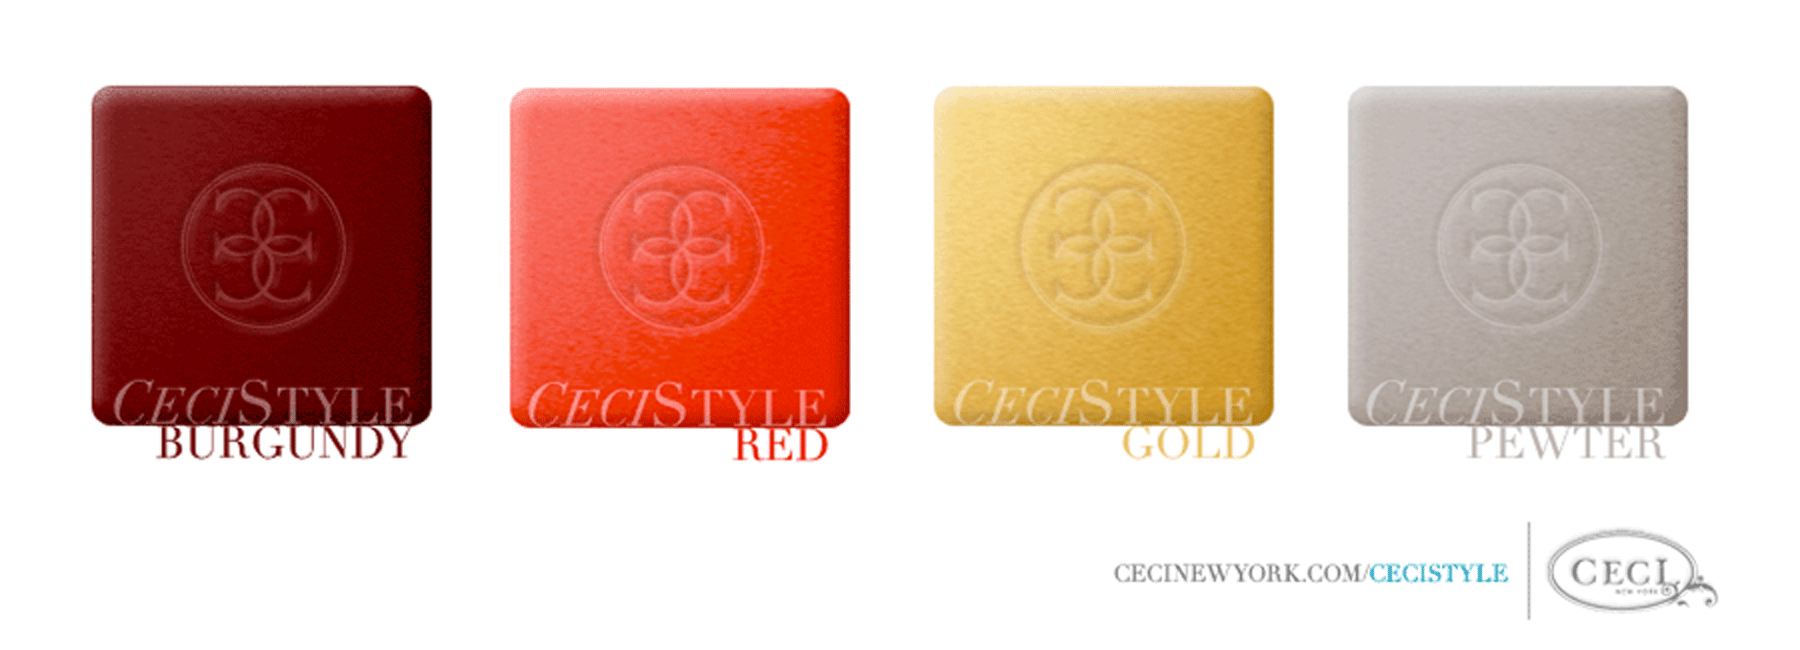 Ceci's Color Stories - Burgundy & Red Wedding Colors - color swatches, burgundy, red, gold, pewter, wedding, swatches